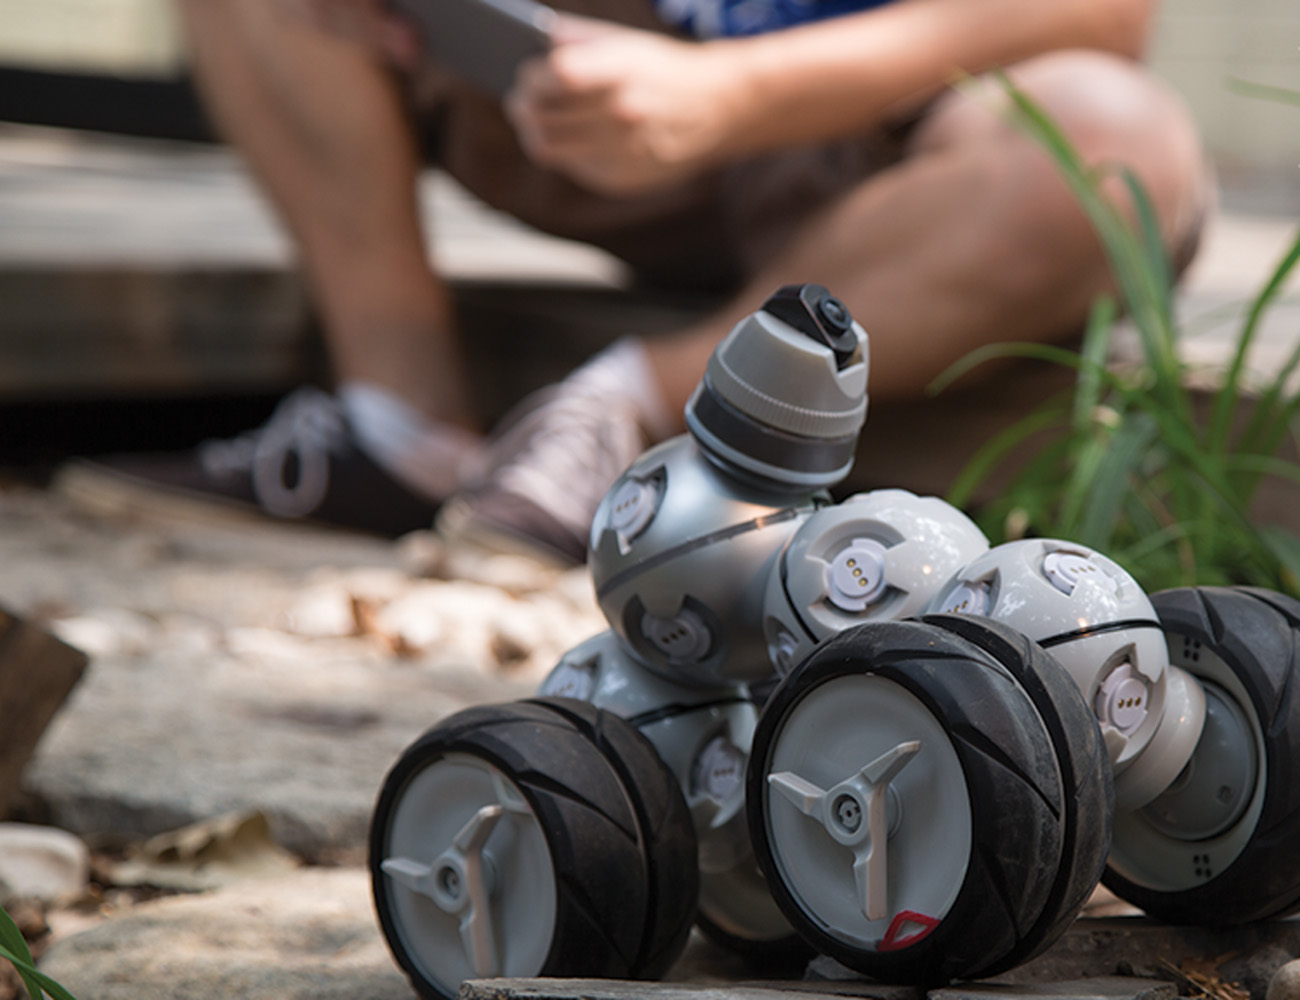 CellRobot – Hundreds of Robots in One